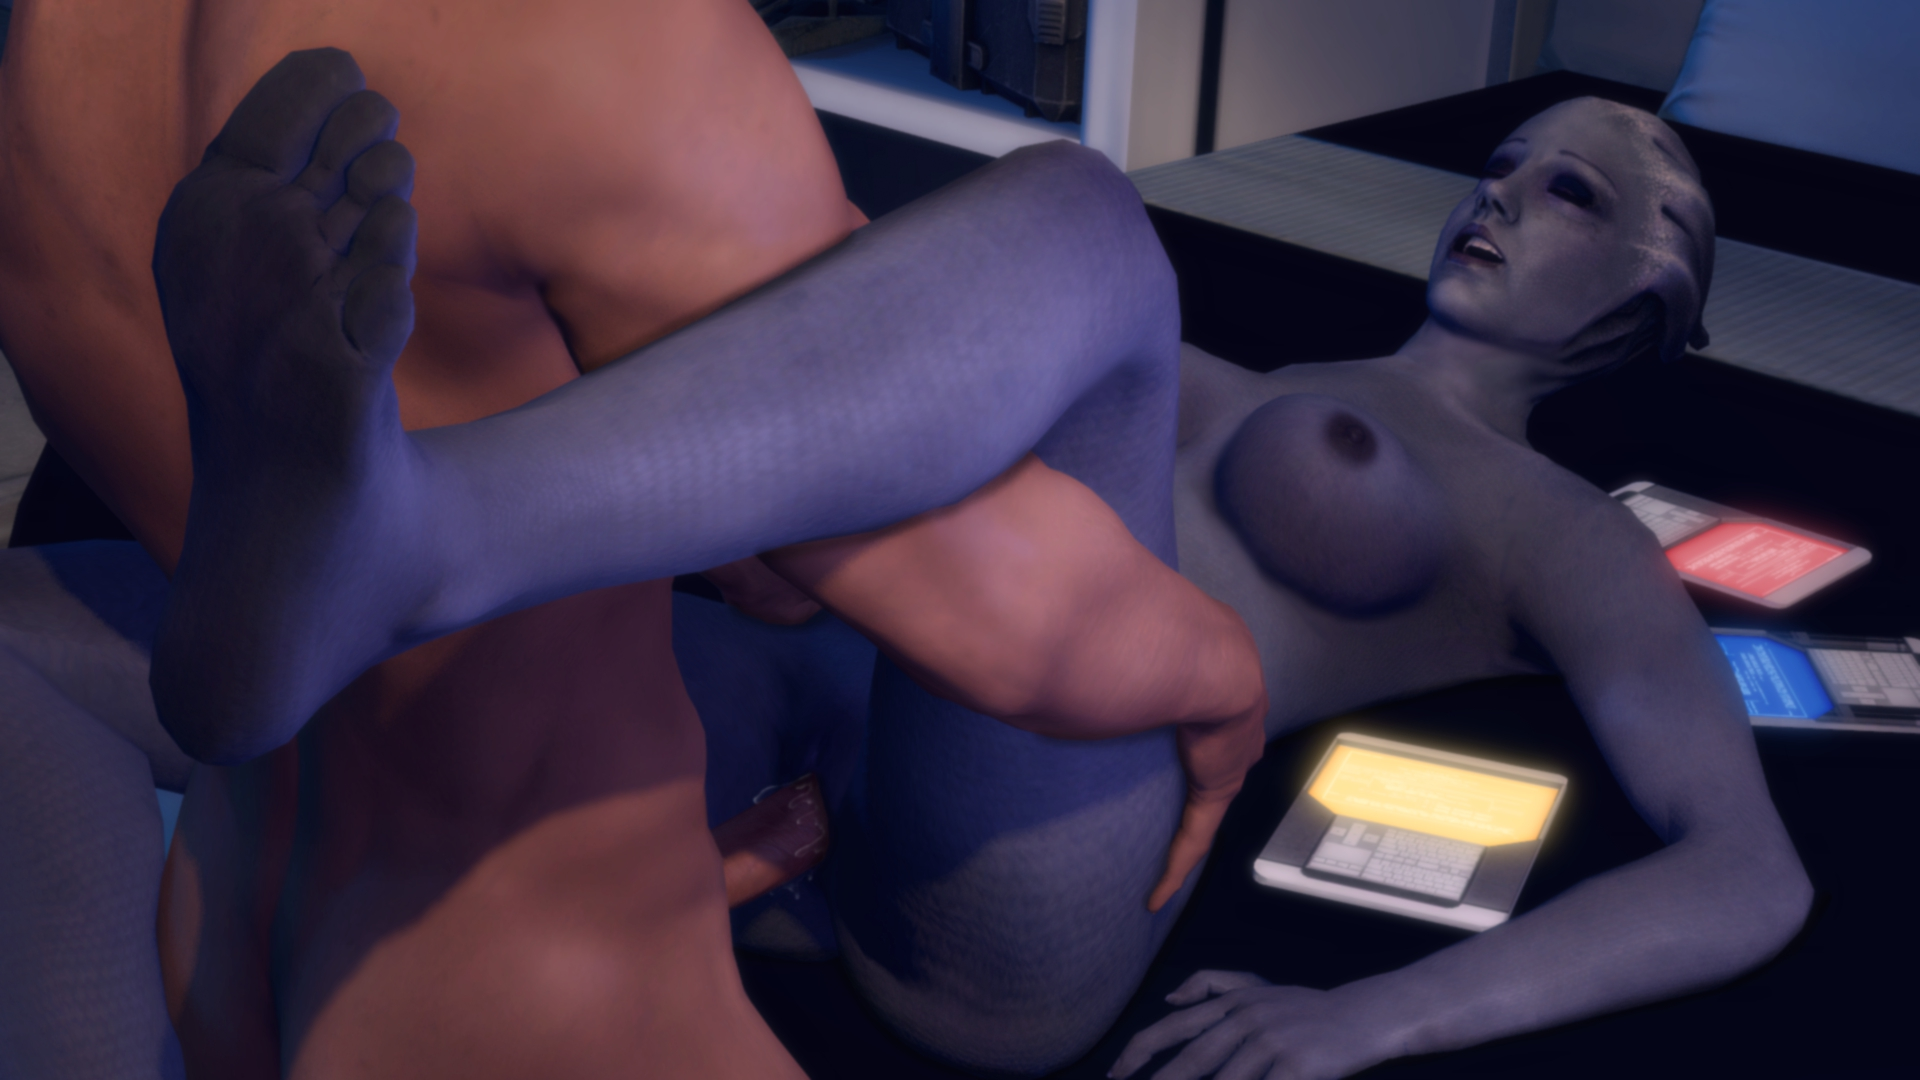 Mass effect liara sex photo nackt tube